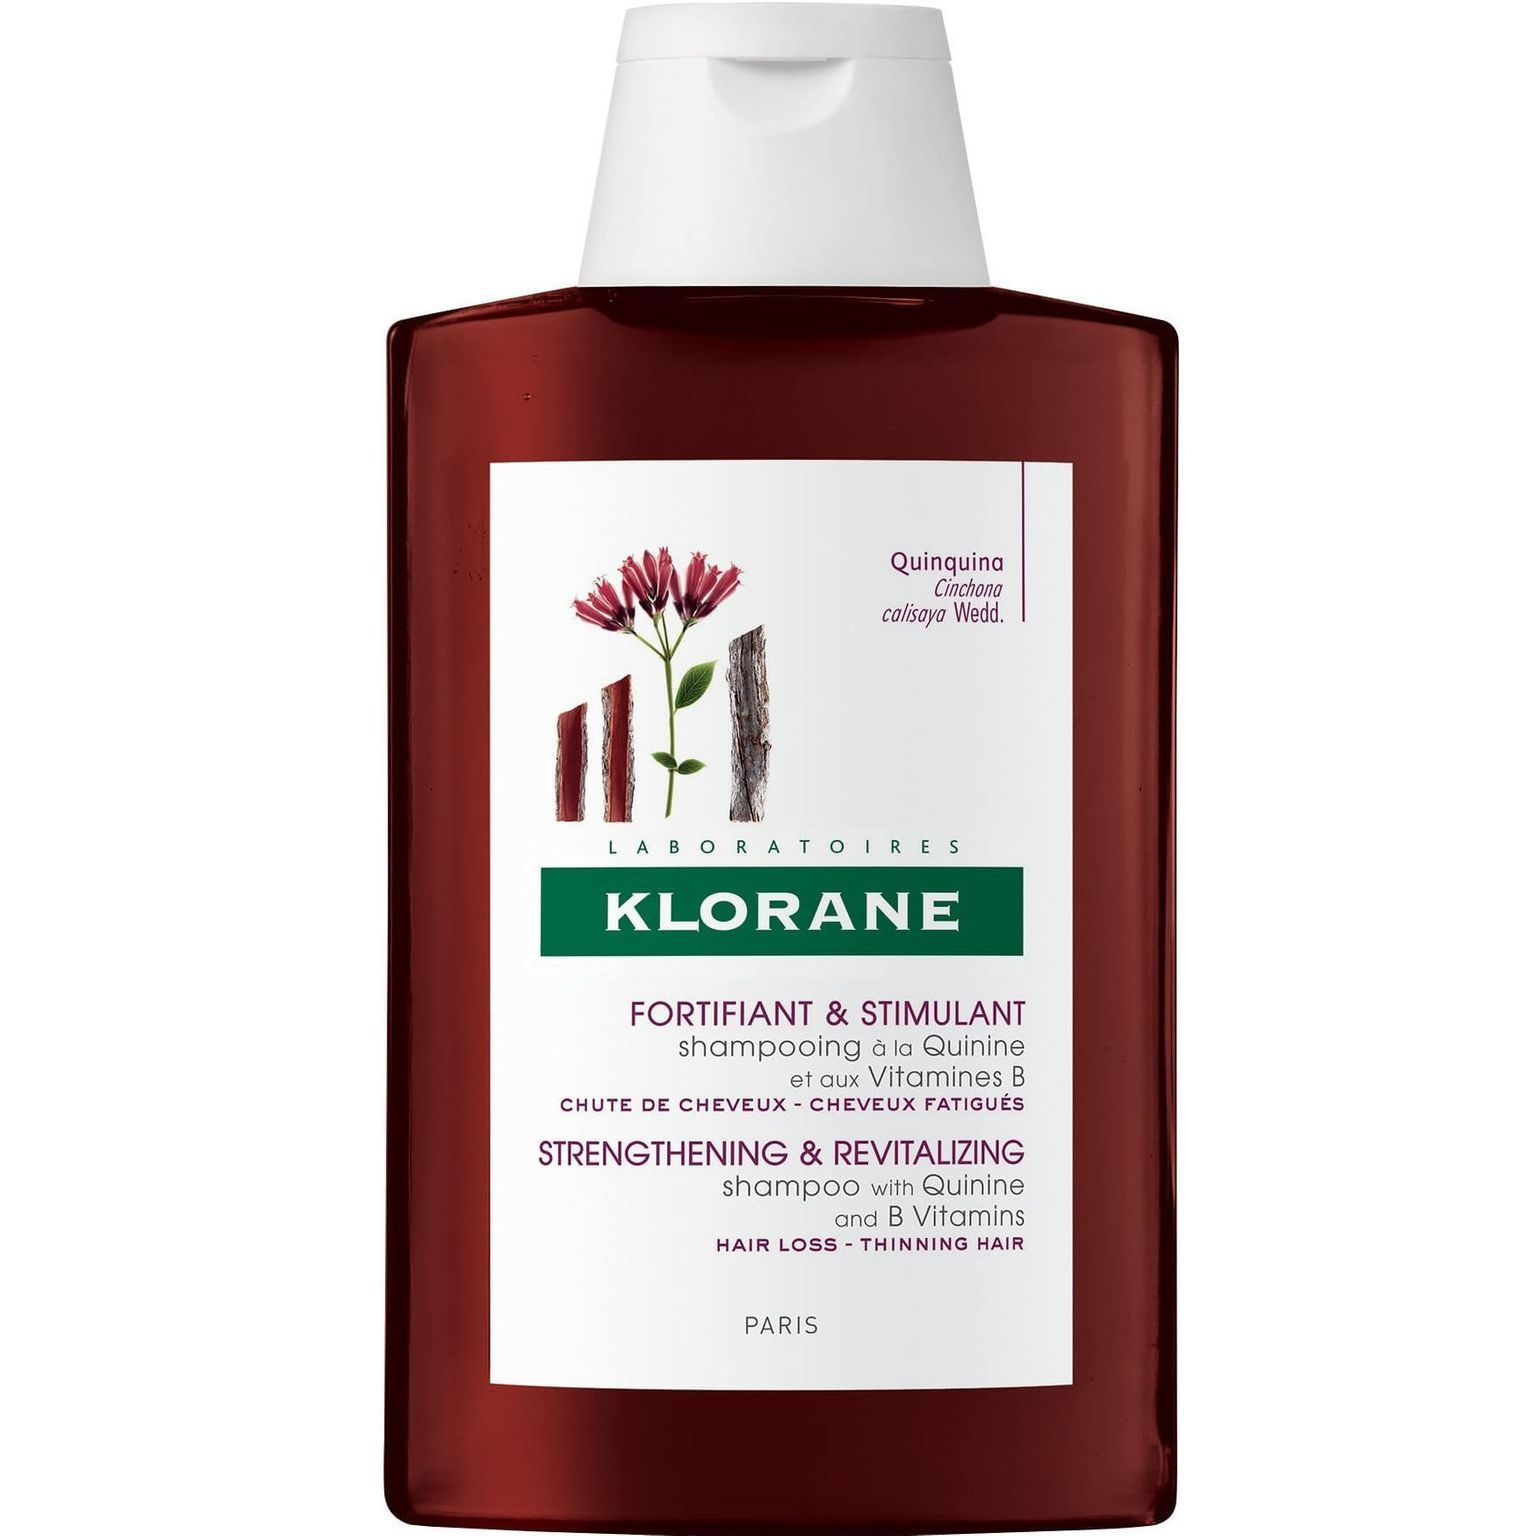 Strengthening Shampoo with Quinine and B Vitamins